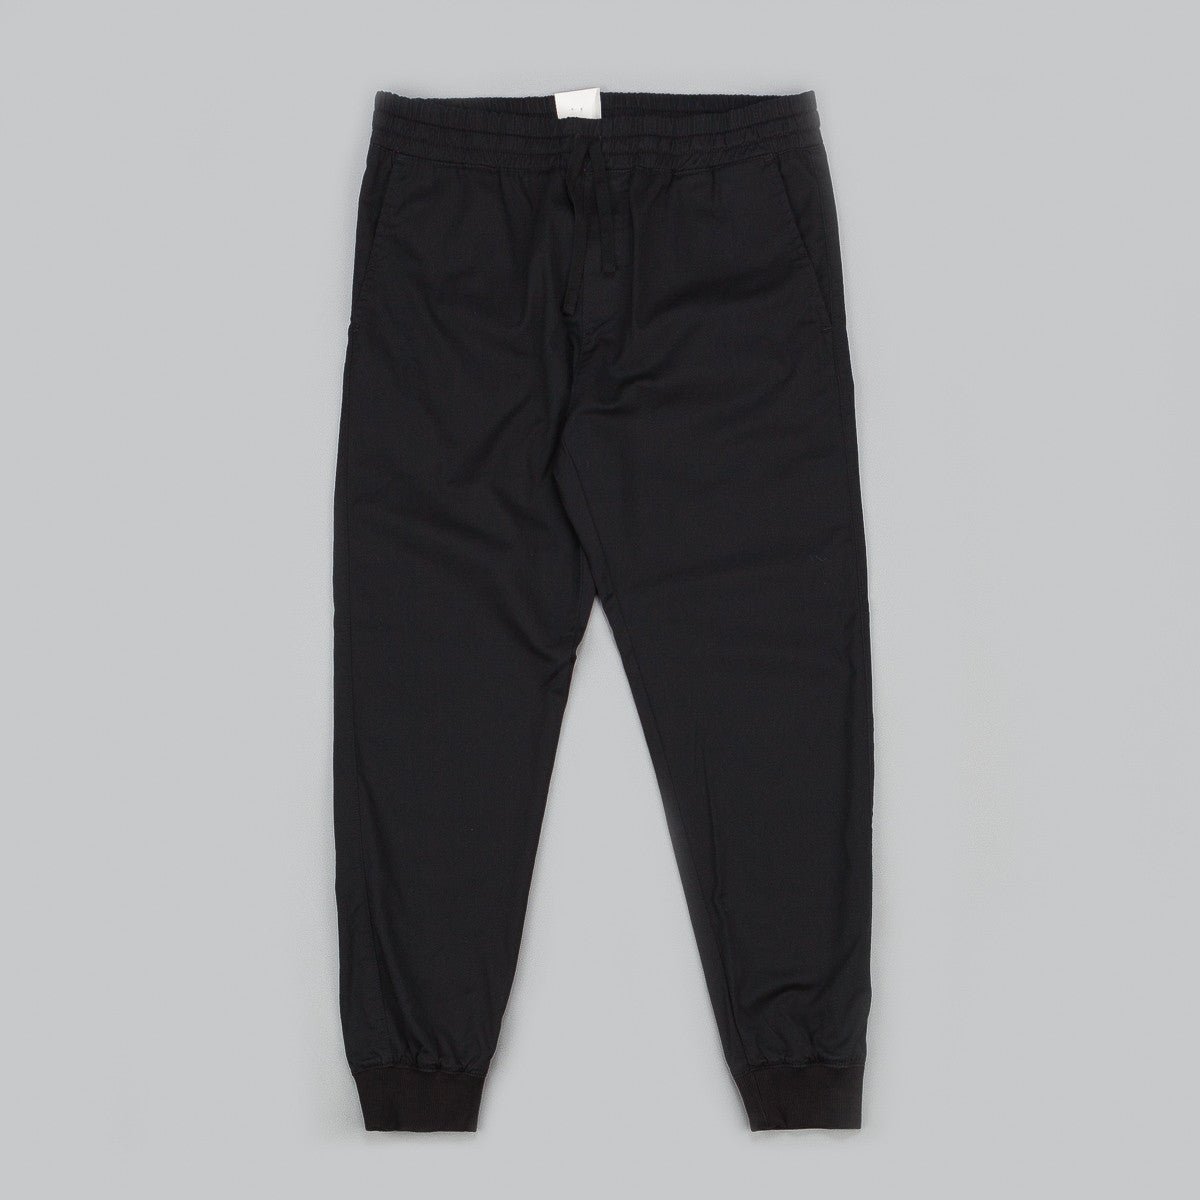 Carhartt Madison Sweatpants - Black